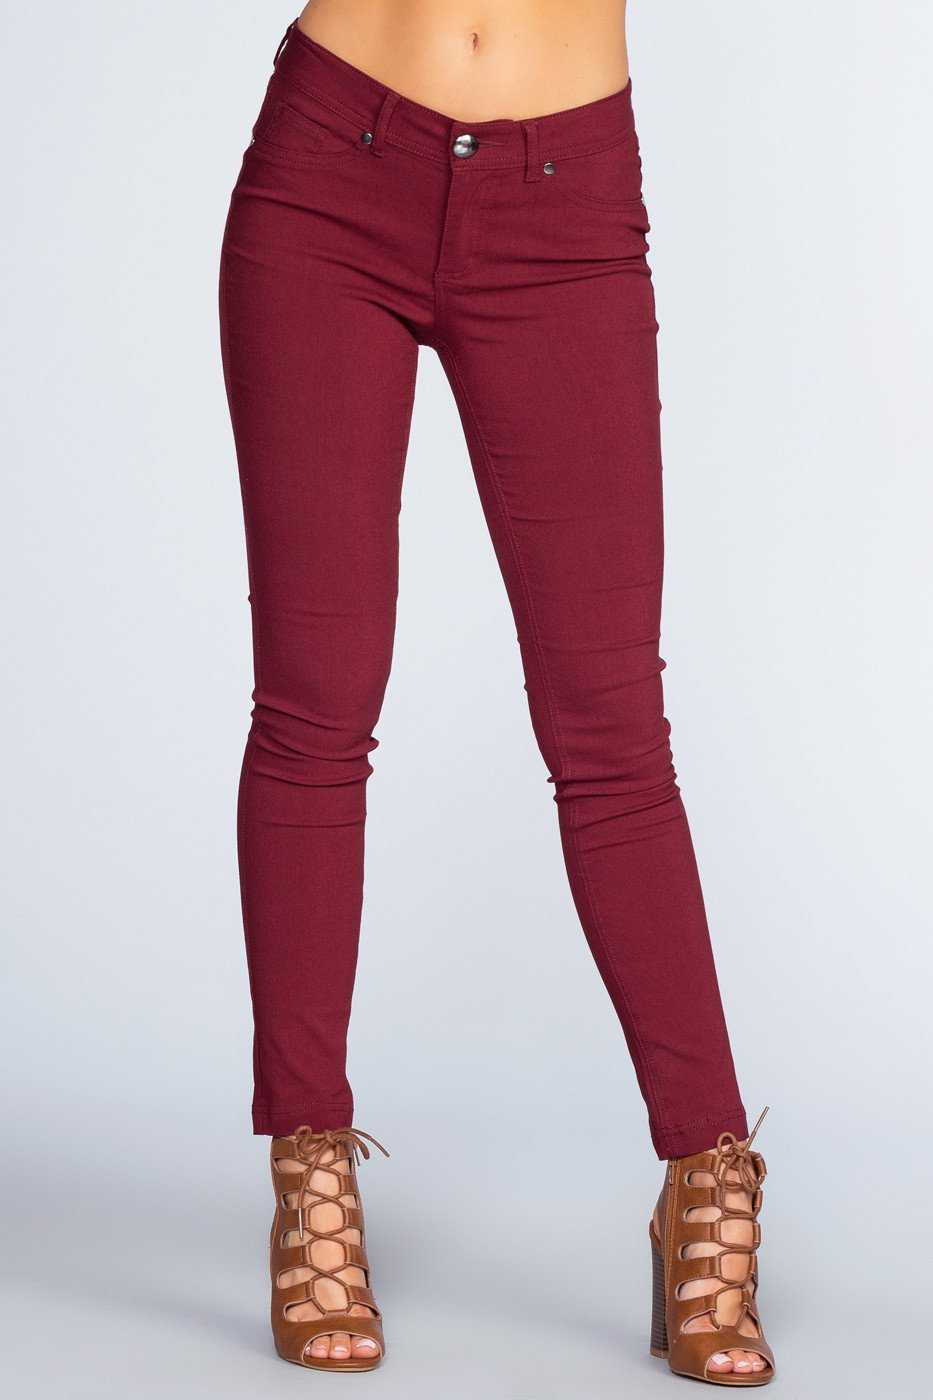 Pants - Power Trip Skinnies - Burgundy